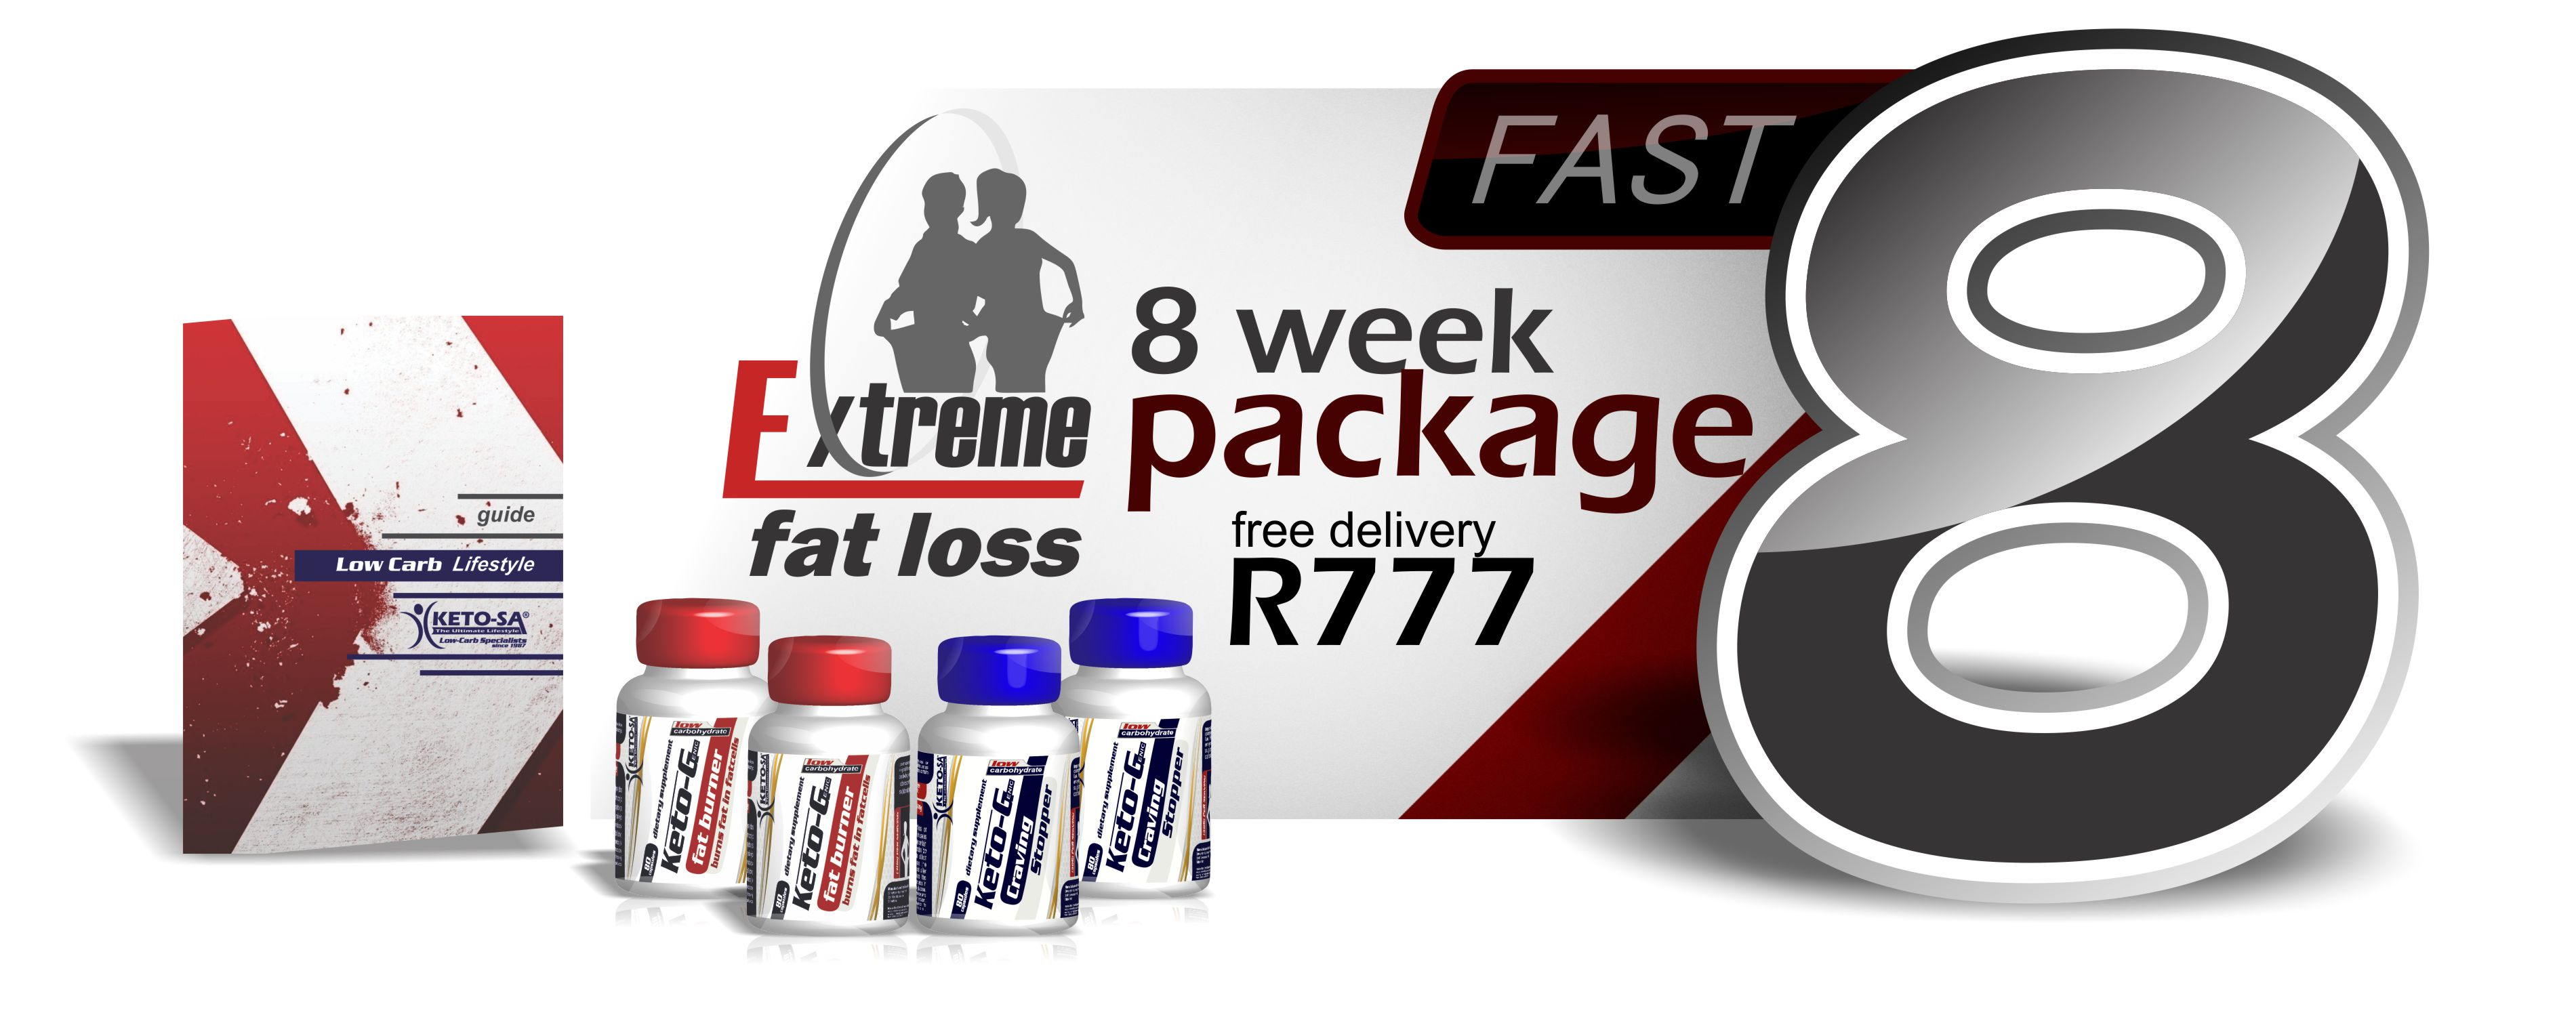 Extreme Fat Loss Fast 8